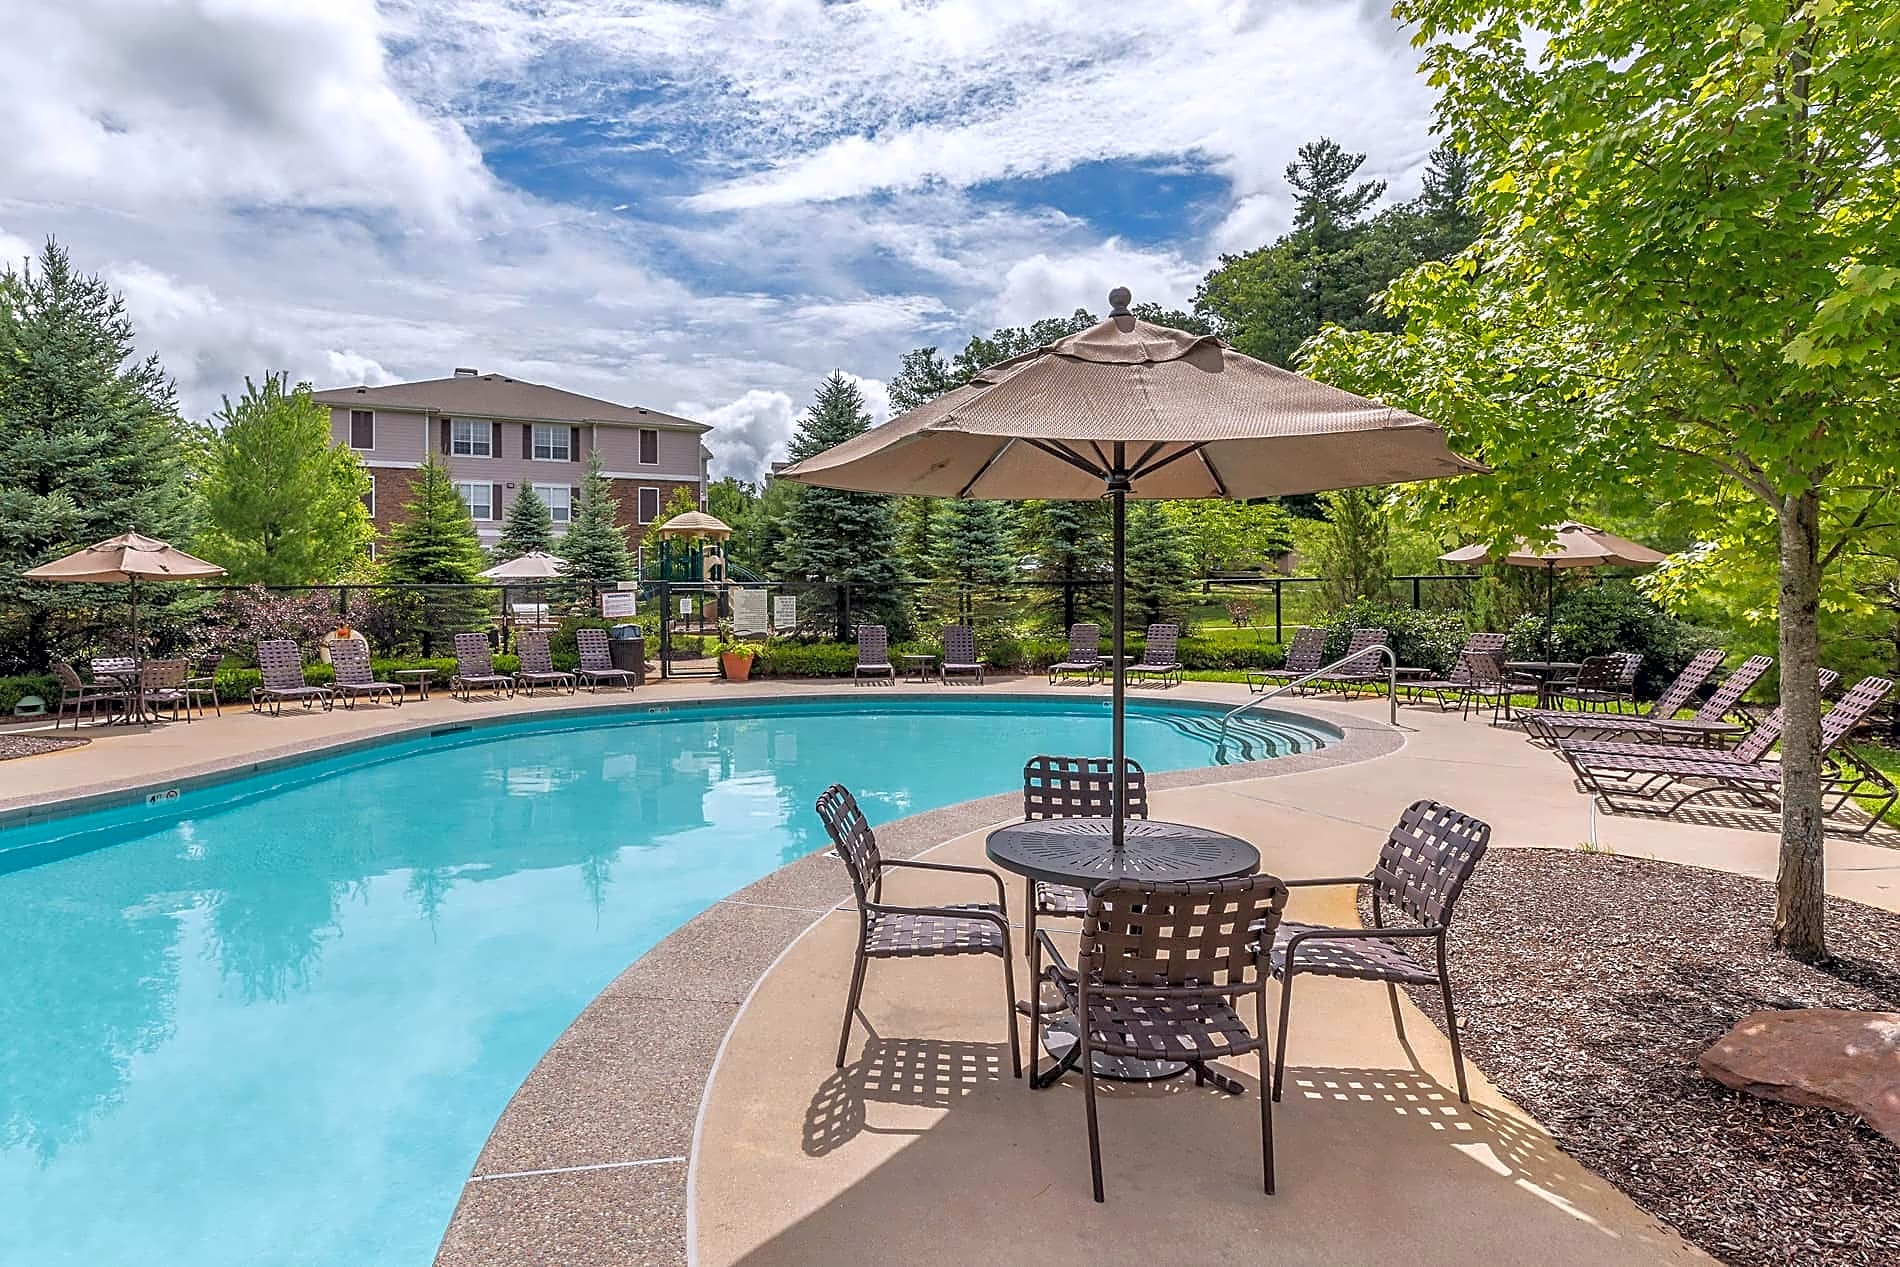 Apartments Near Merrimack Lodge at Ames Pond for Merrimack College Students in North Andover, MA